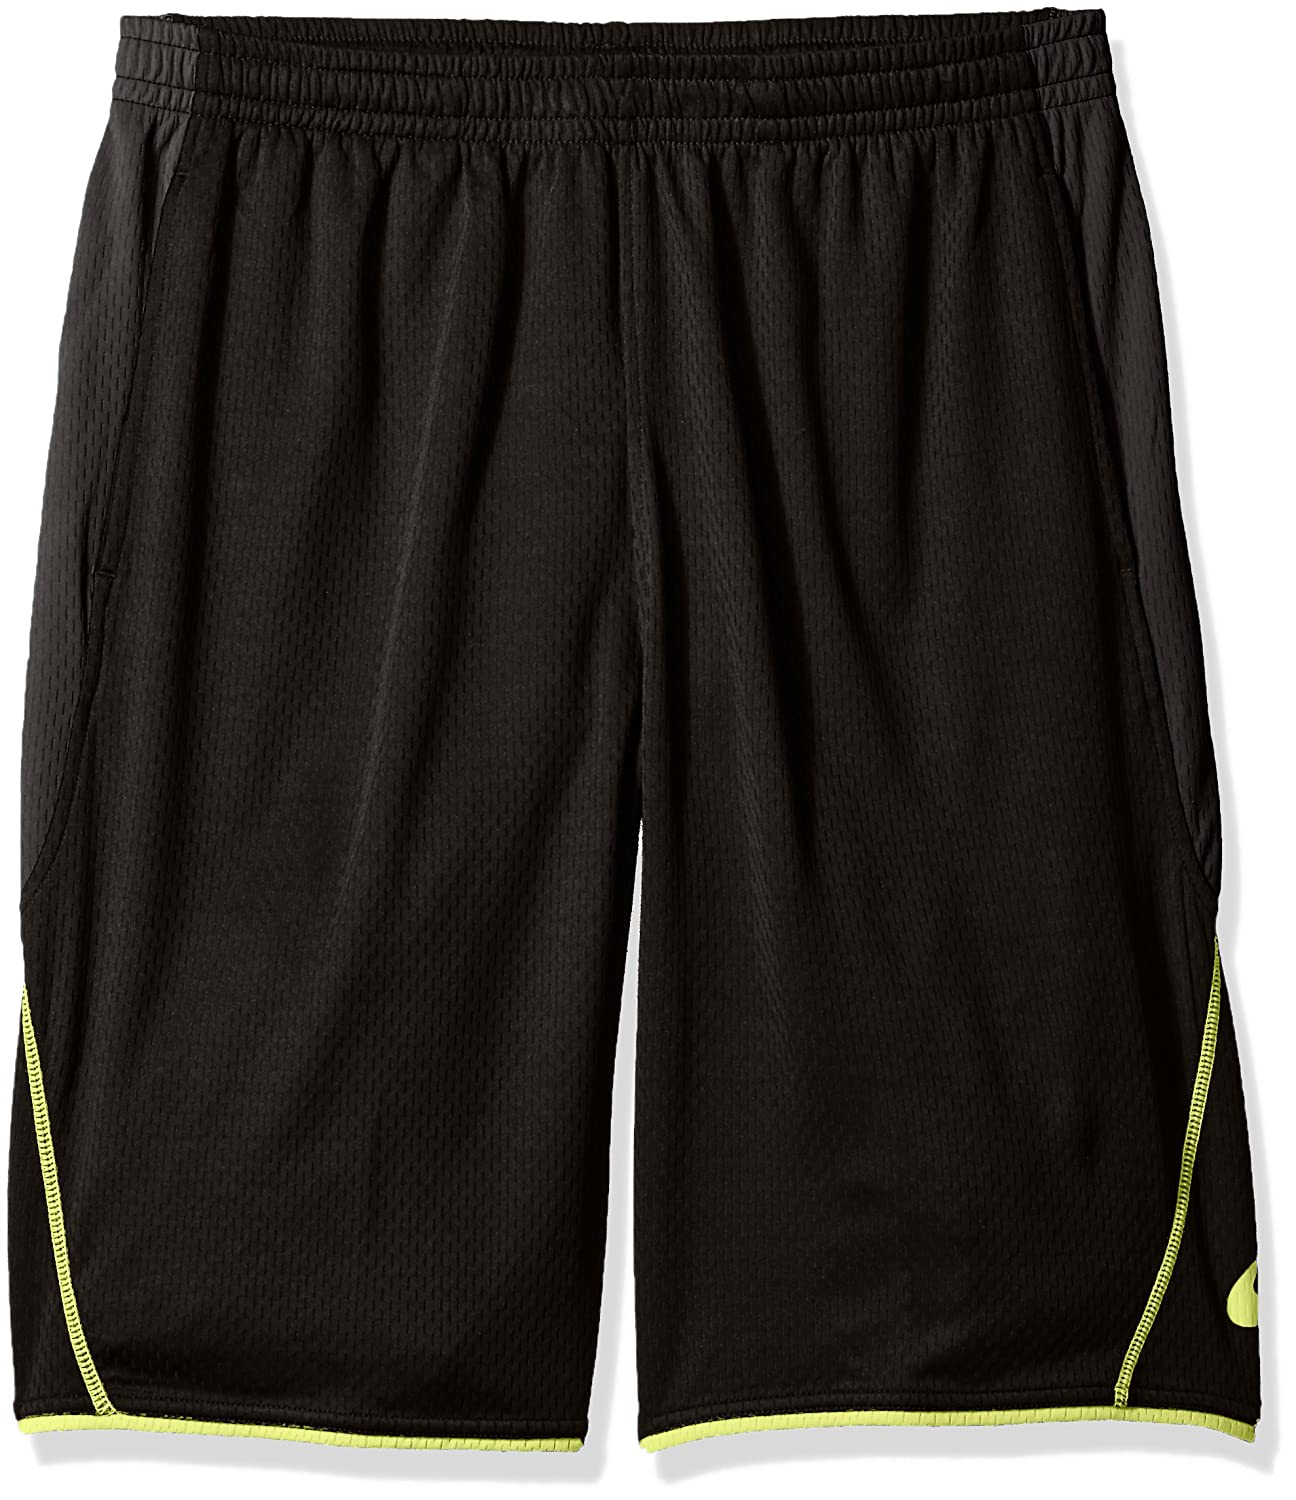 ASICS Men's Big & Tall Trainer Short black/Lime 2XL Asics Mens Athletic MS841TCW